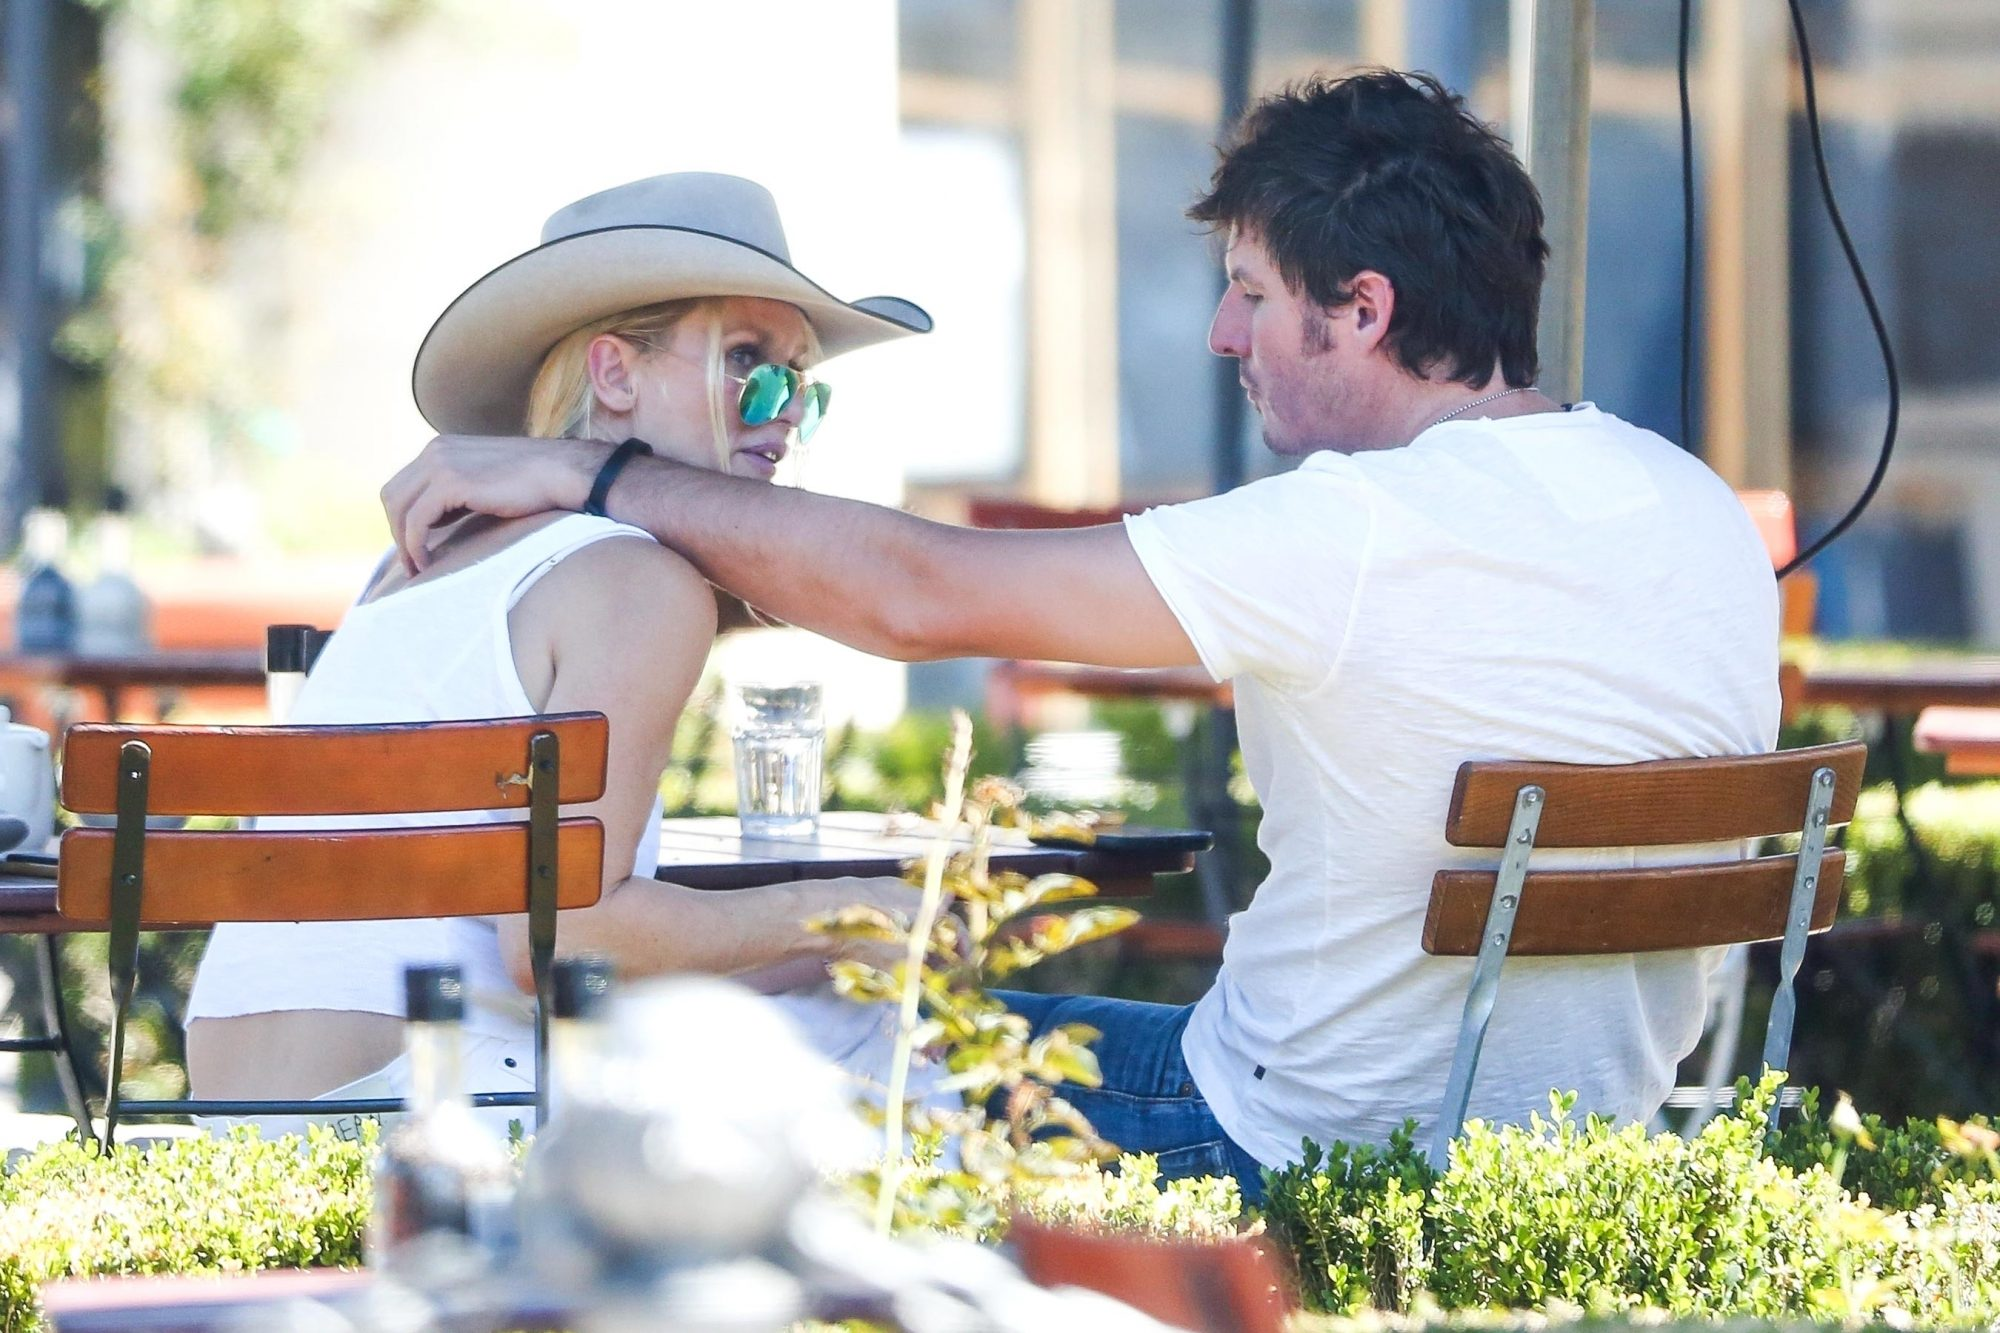 Nicollette Sheridan enjoys lunch with her boyfriend after finalizing divorce from Aaron Phypers